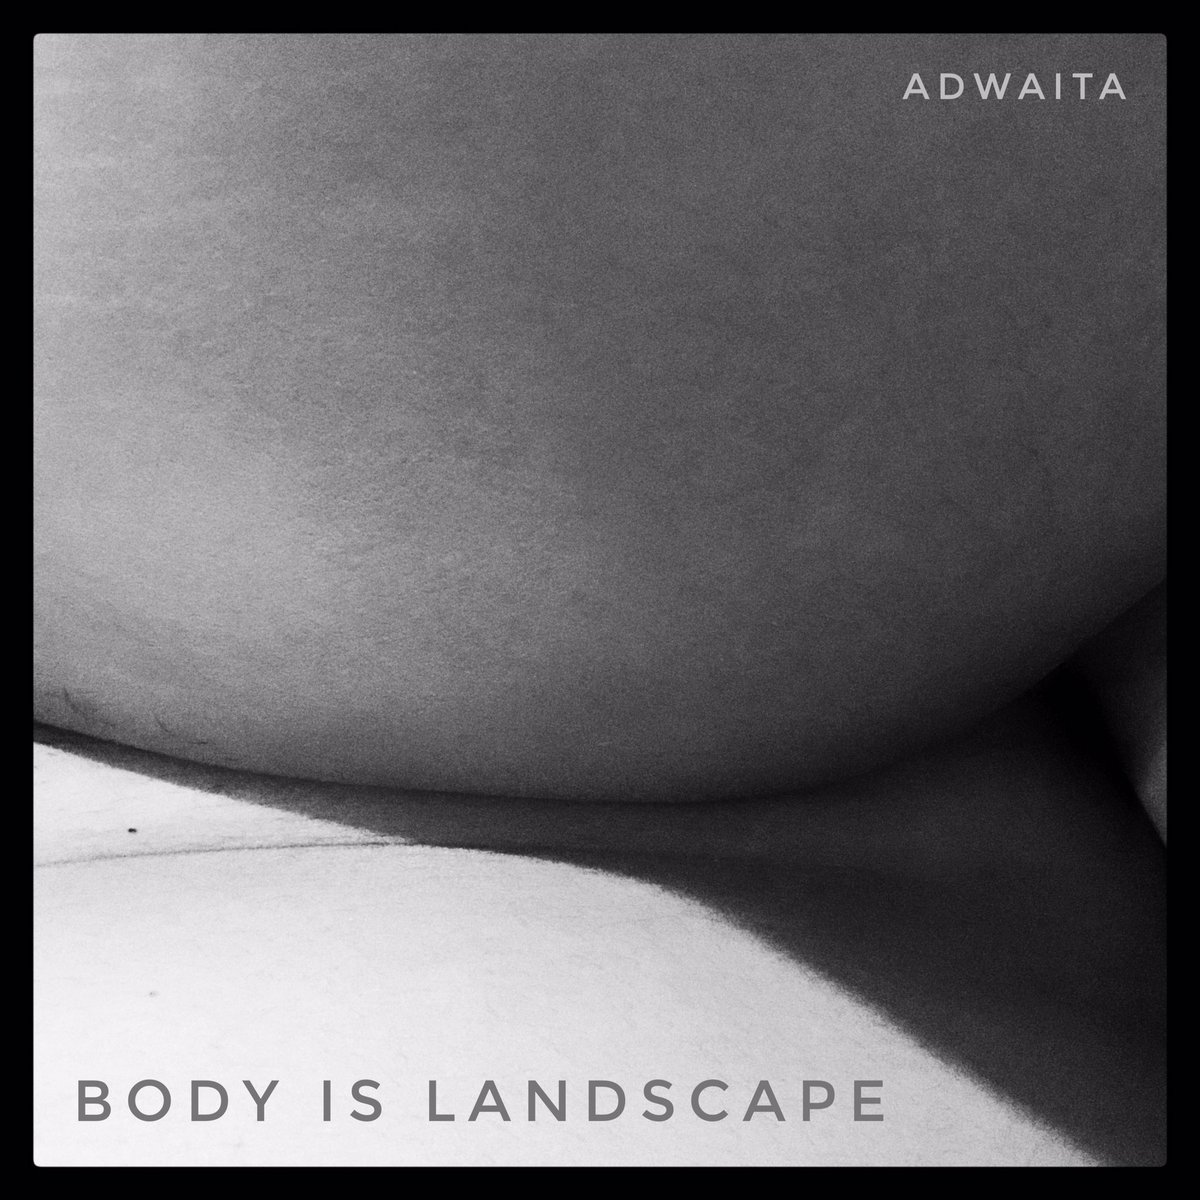 Body..... #AmWriting #poetry #micropoetry #visualpoetry #blackandwhite #bodypositivity<br>http://pic.twitter.com/ERUFt7jTXJ